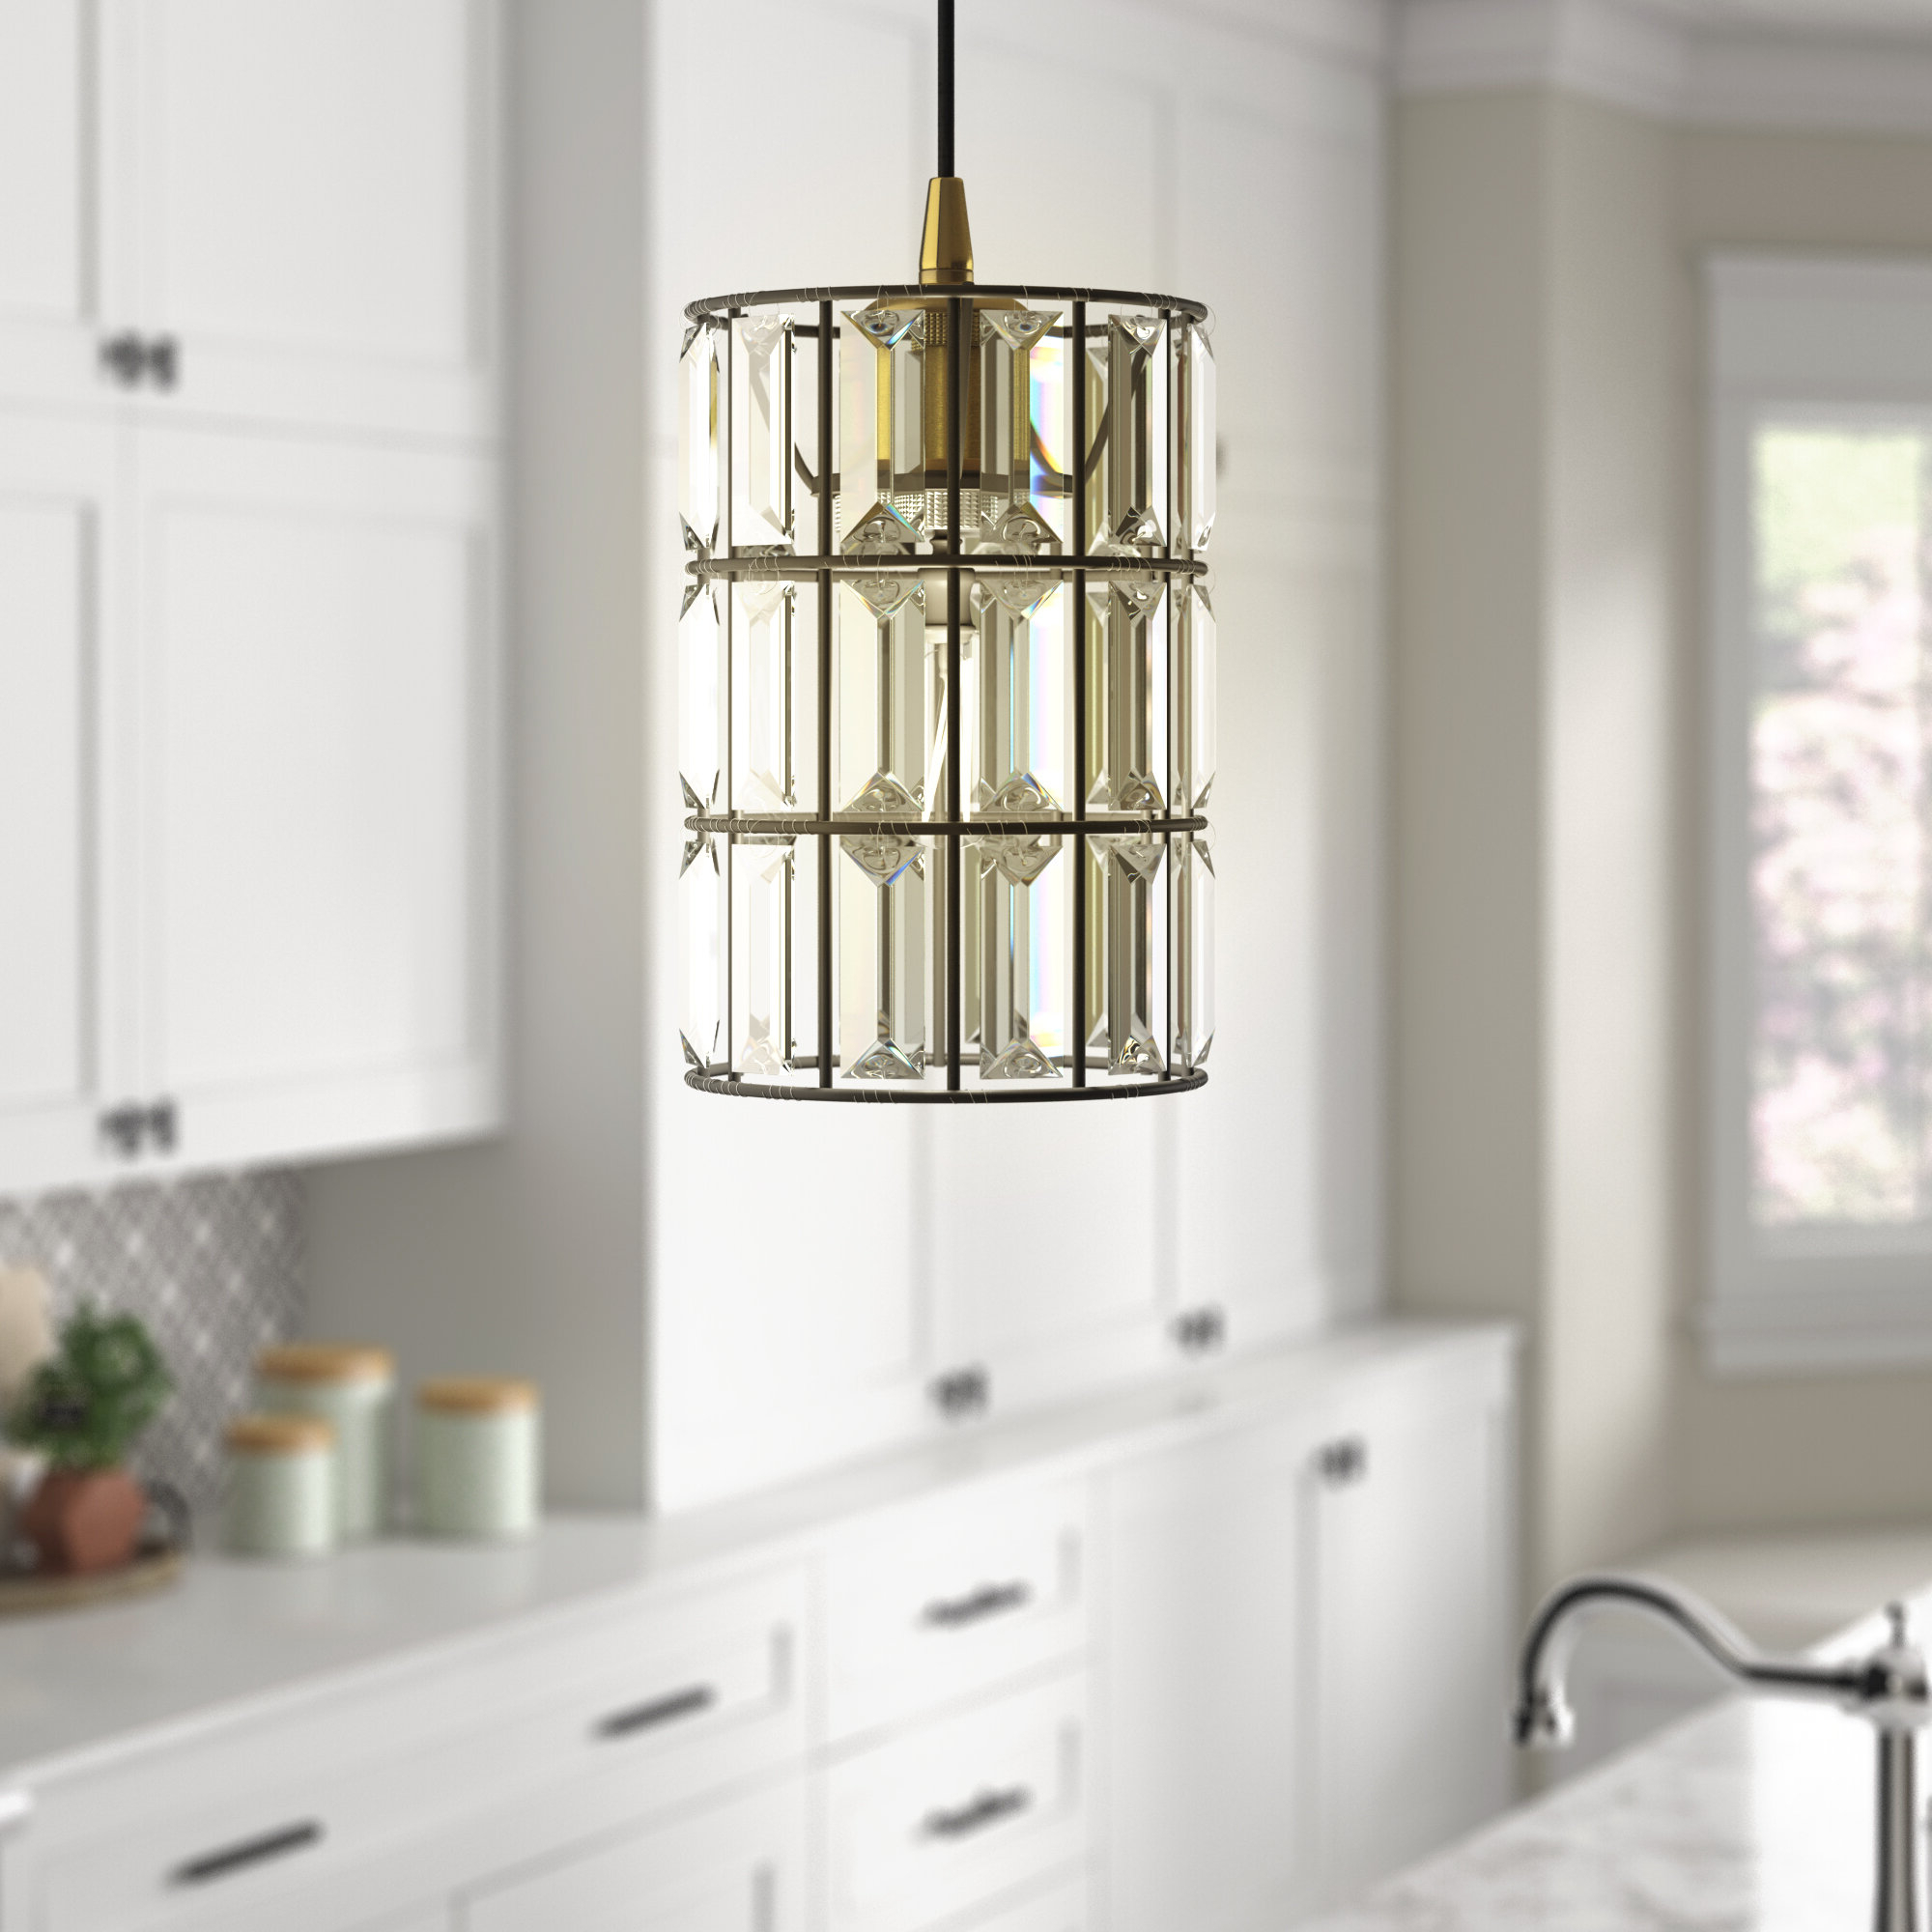 Colston 1 Light Single Cylinder Pendant Regarding Recent Hurst 1 Light Single Cylinder Pendants (View 6 of 20)